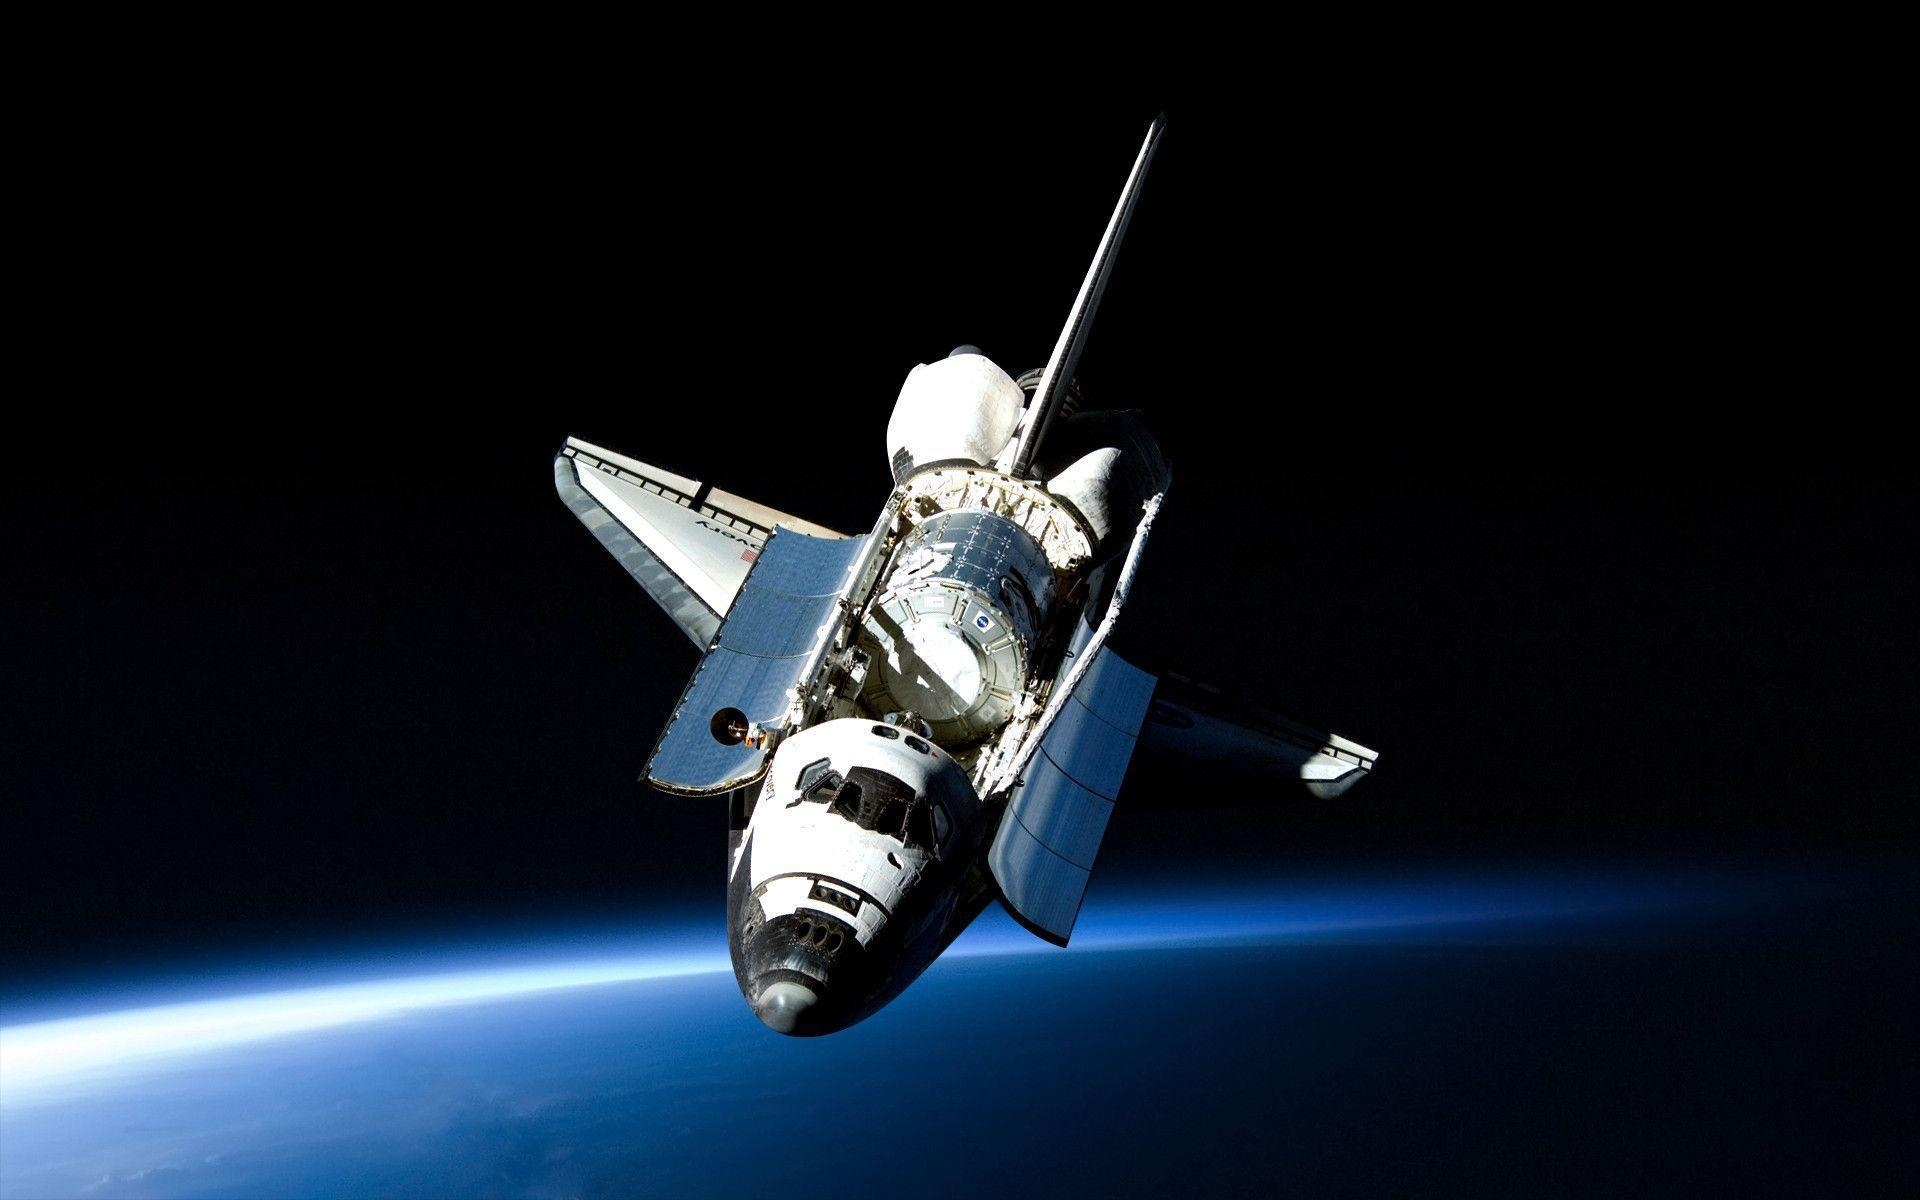 discovery space shuttle - HD1920×1200